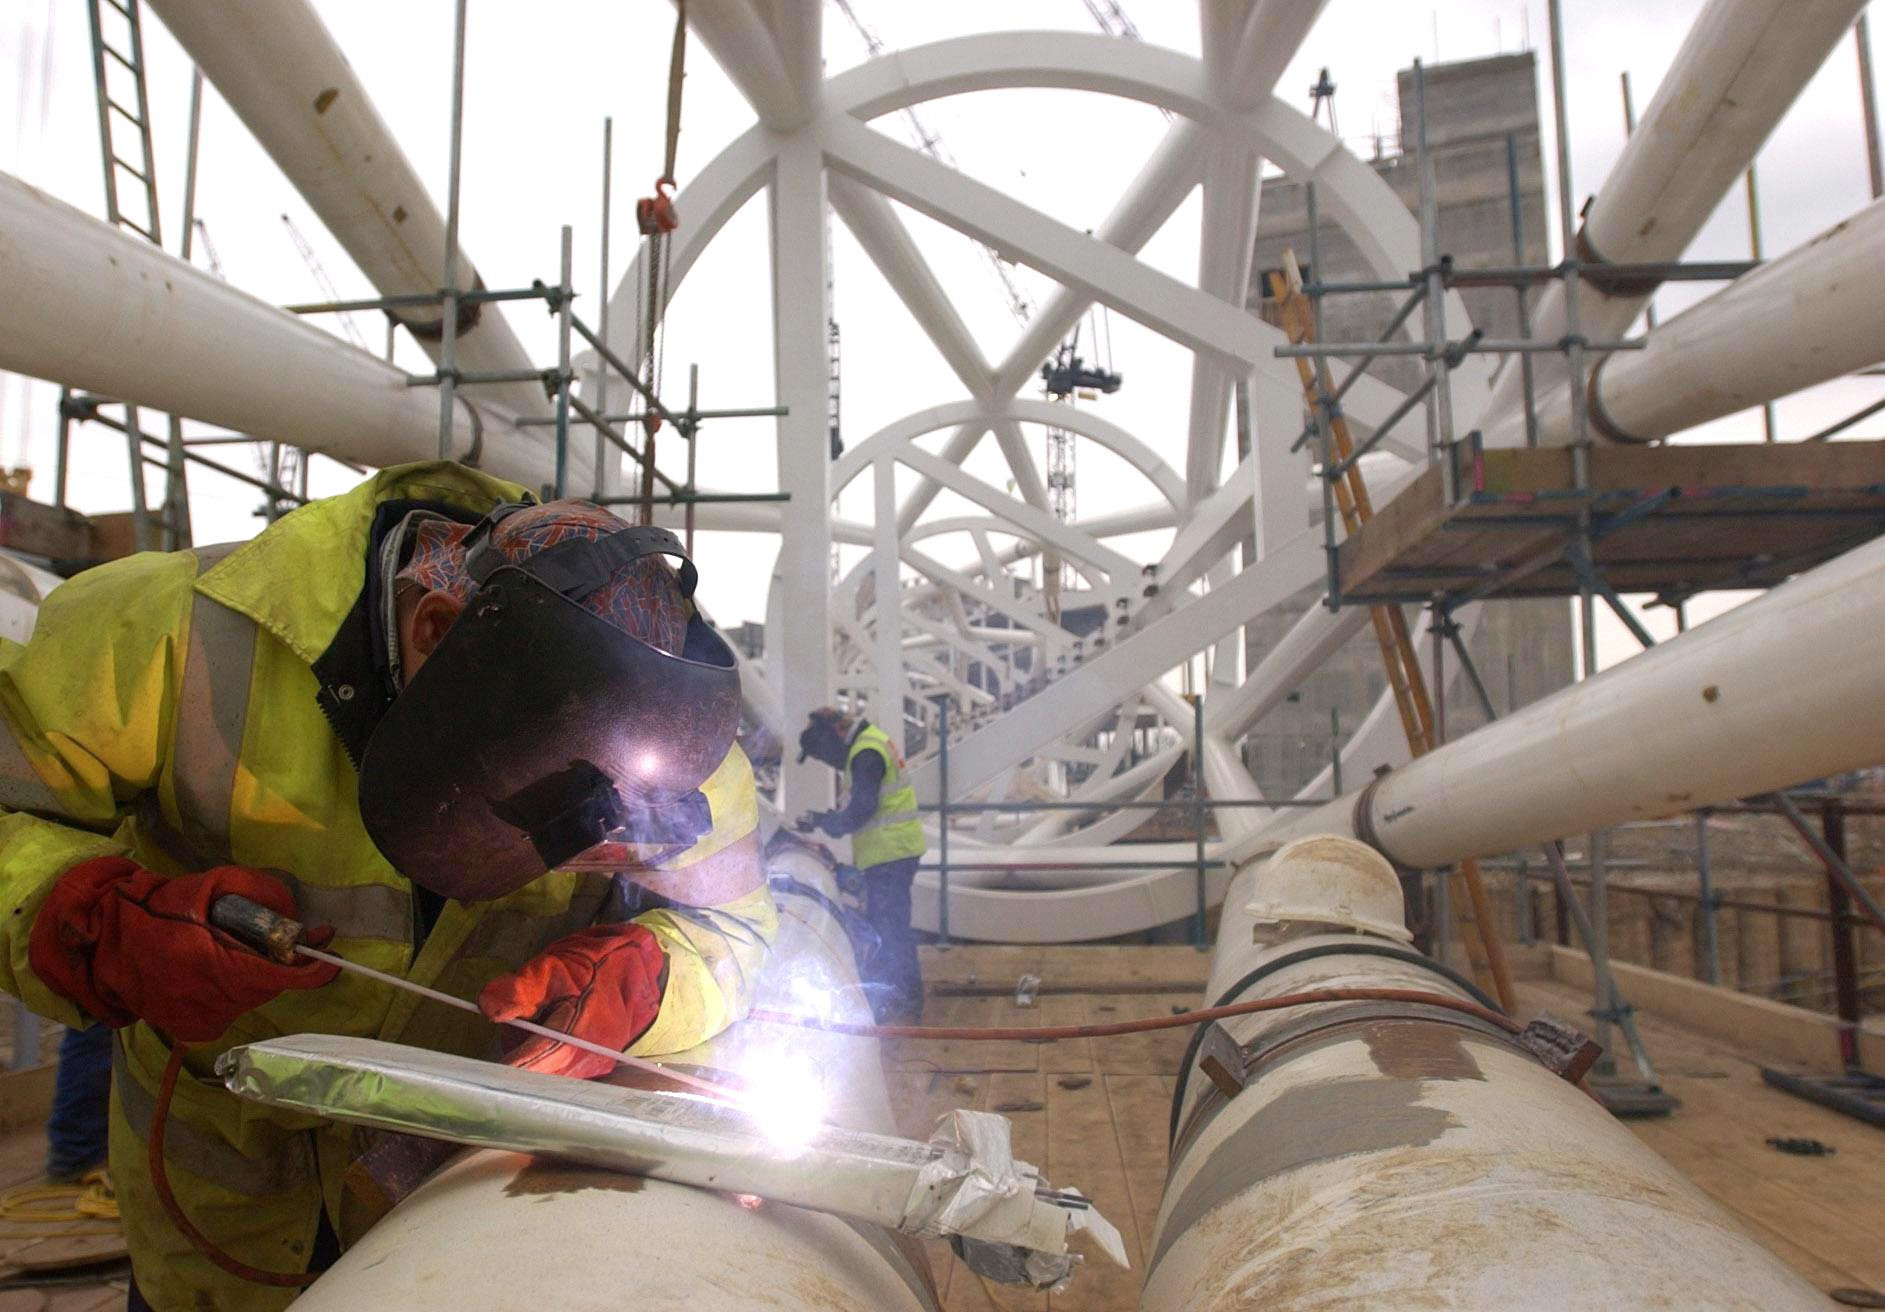 Plater Stephen Matthews welds the last piece of the arch during the construction of the new Wembley Stadium, clearing the way for the giant structure to be lifted into place within weeks. The new stadium, which is being built on the site of the old Wembley stadium in north-west London, should be completed in early 2006 and will seat 90,000 spectators.   04/03/04: Vacancies in construction and metal trades are becoming increasingly difficult to fill, highlighting a shortage of skilled workers, a new report showed. Firms are reporting a low number of applicants with the necessary skills, experience or qualifications, research found.